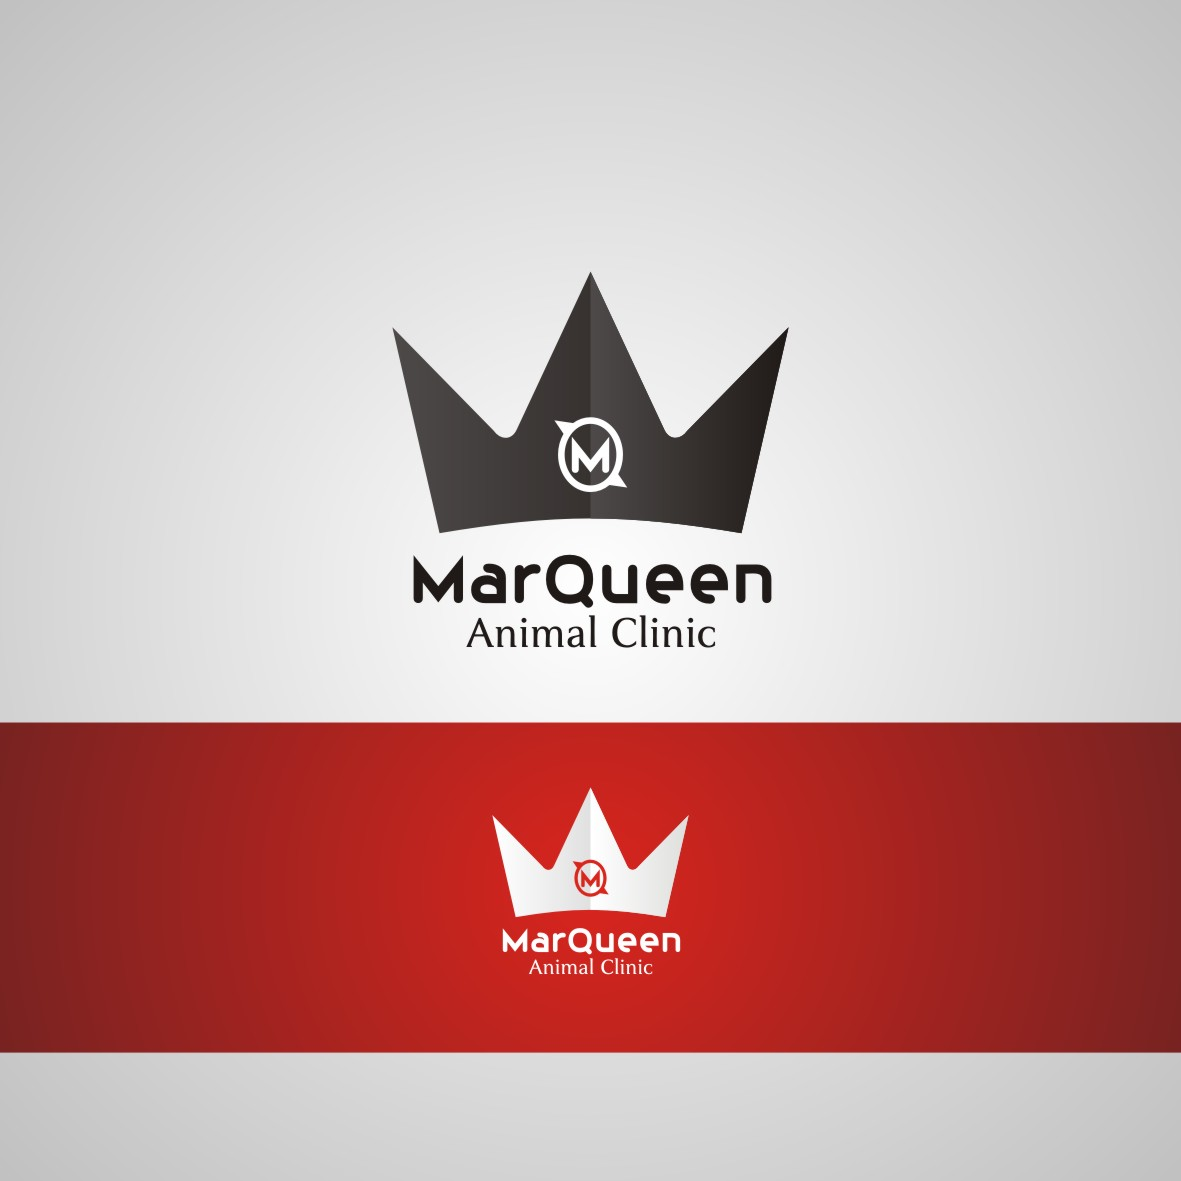 Logo Design by arteo_design - Entry No. 114 in the Logo Design Contest Fun Logo Design for MarQueen Animal Clinic.